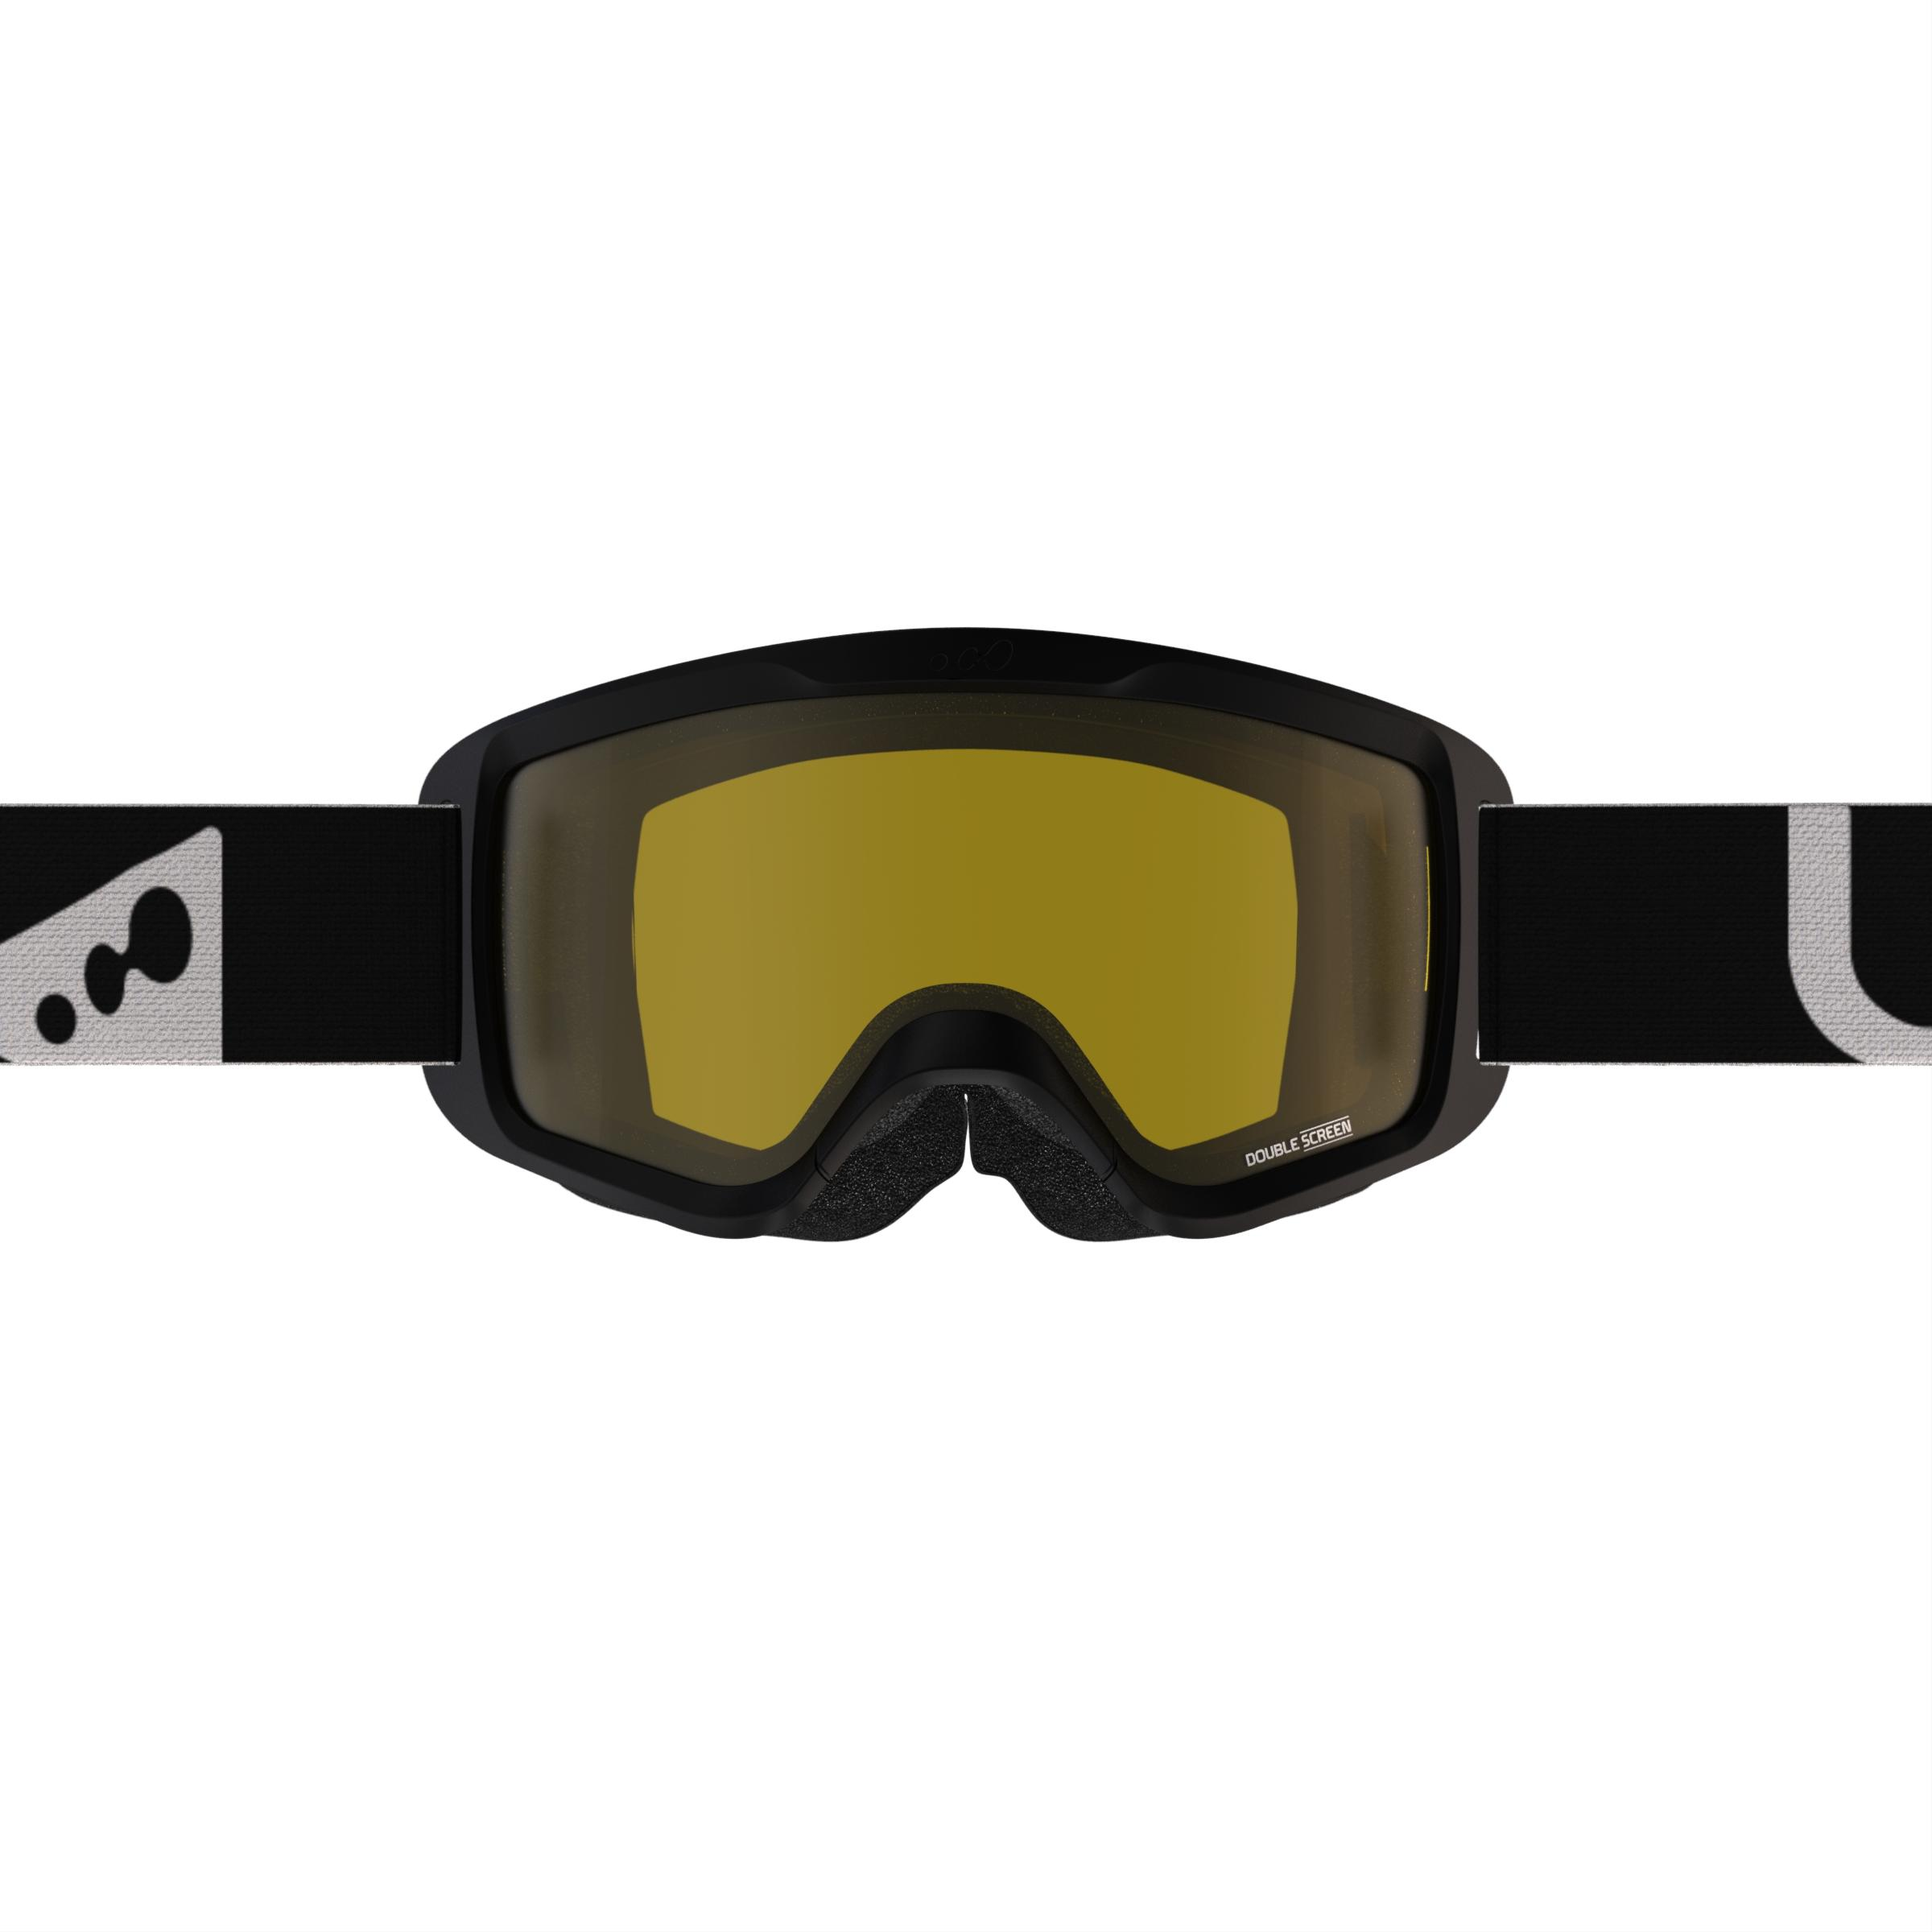 SKIING AND SNOWBOARDING MENS' SNOW 300 BAD WEATHER BLACK-P